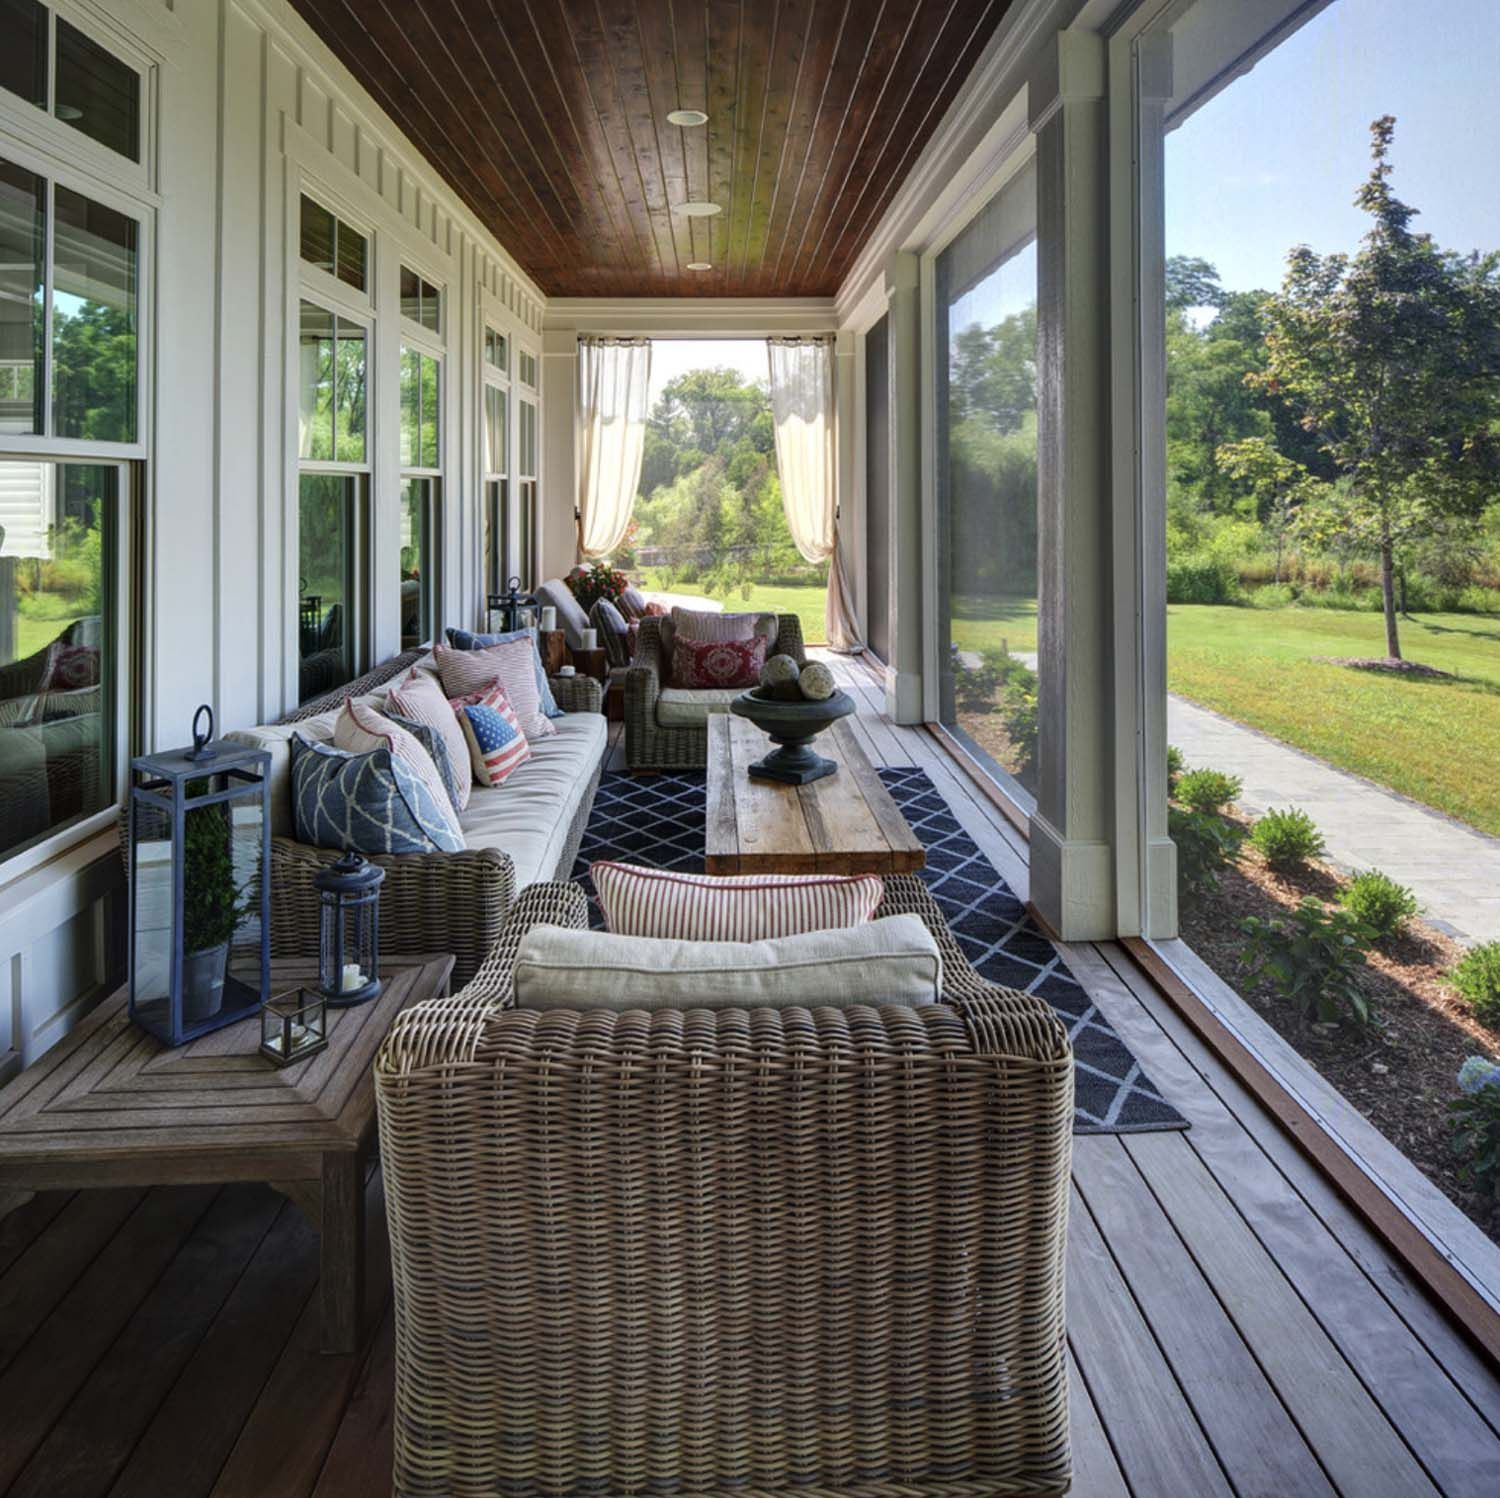 45 Amazingly Cozy And Relaxing Screened Porch Design Ideas Porch Design Screened In Porch Furniture Porch Design Ideas